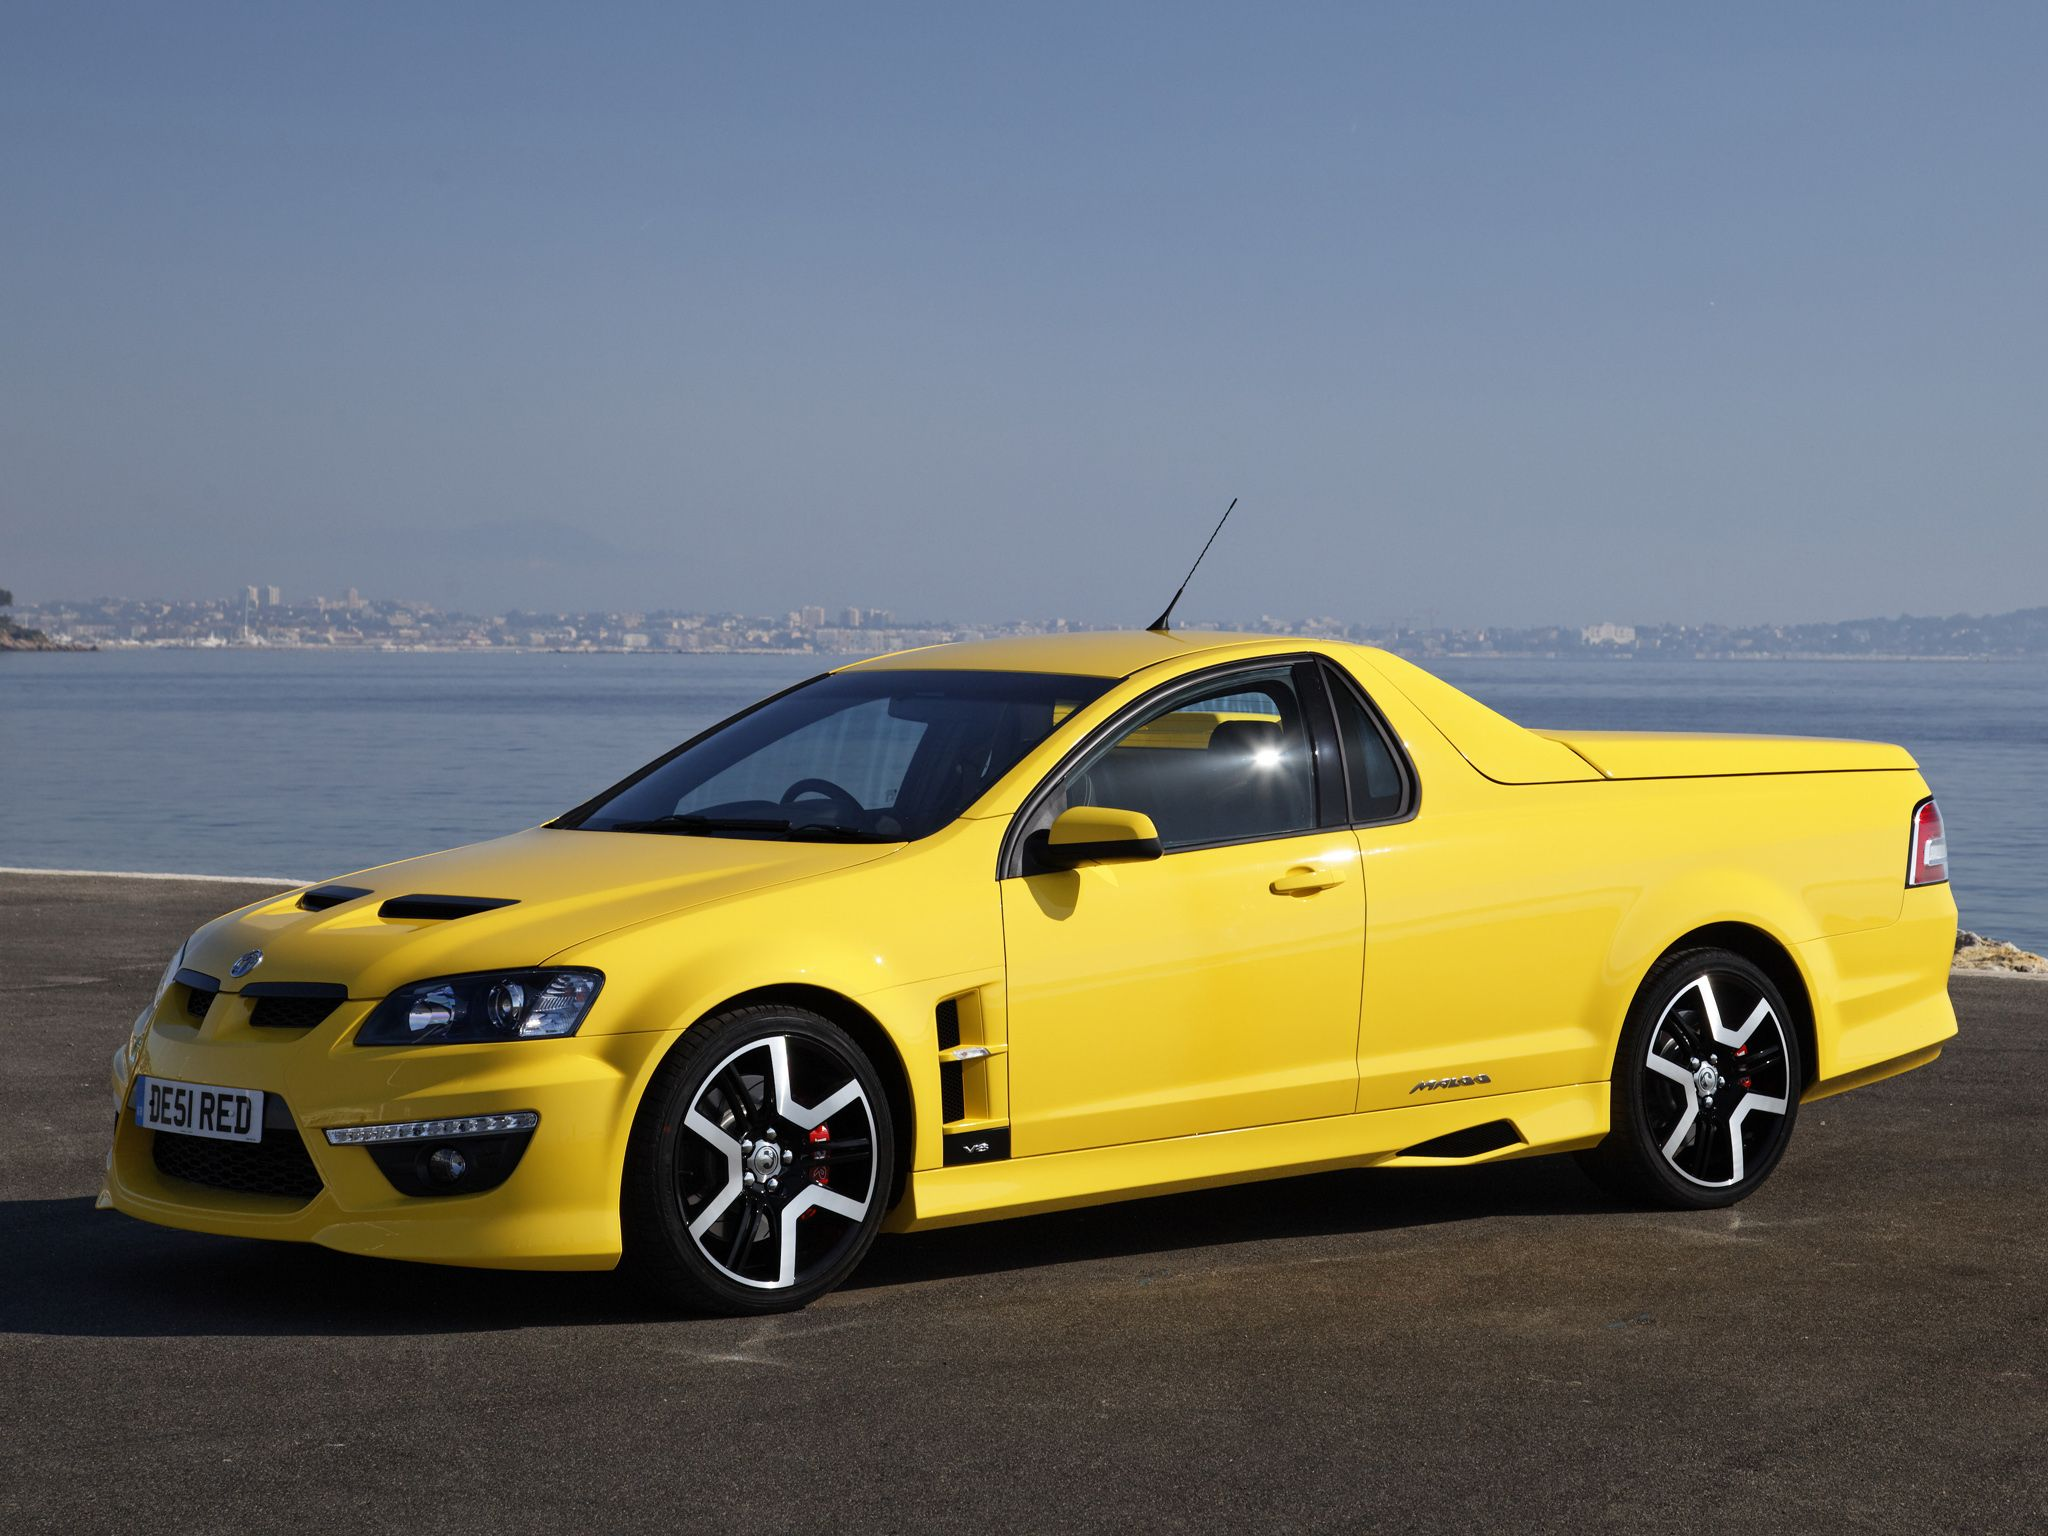 Falcon Xr8 Ute Australian Cars Hot Rods Cars Muscle Aussie Muscle Cars